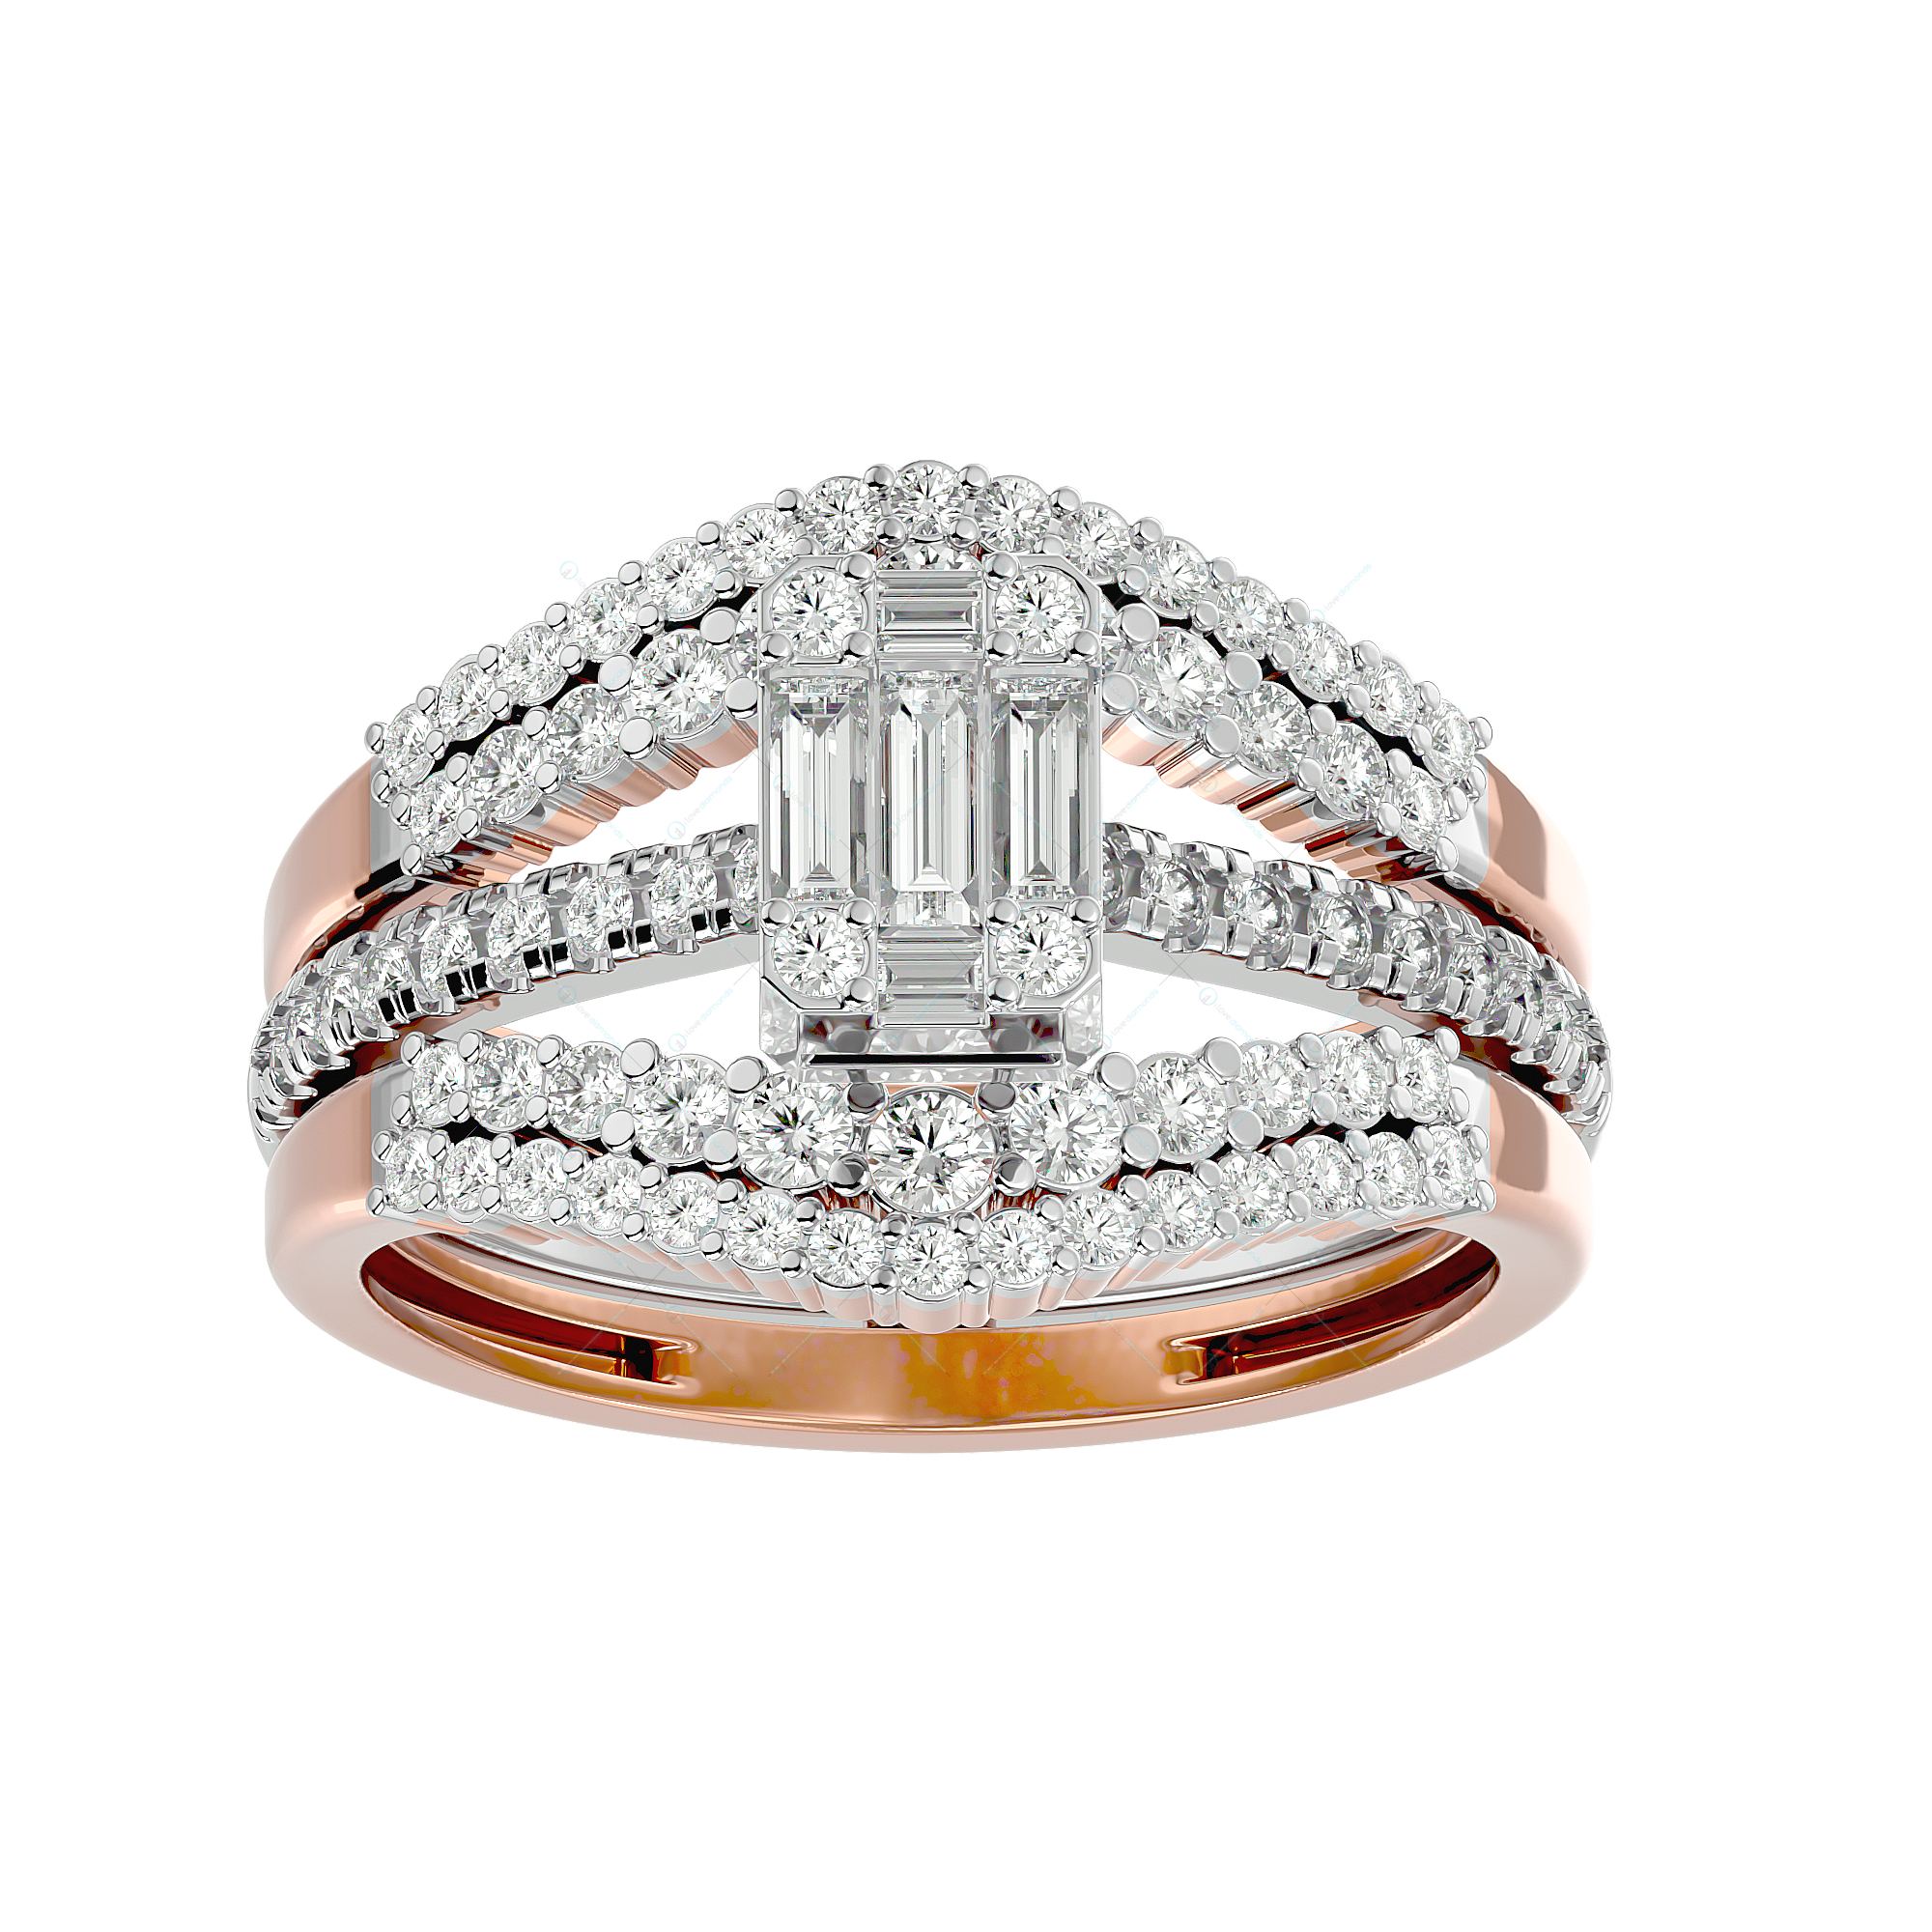 Blazing Bright Solitaire Illusion Diamond Ring in Pink Gold for Women v2